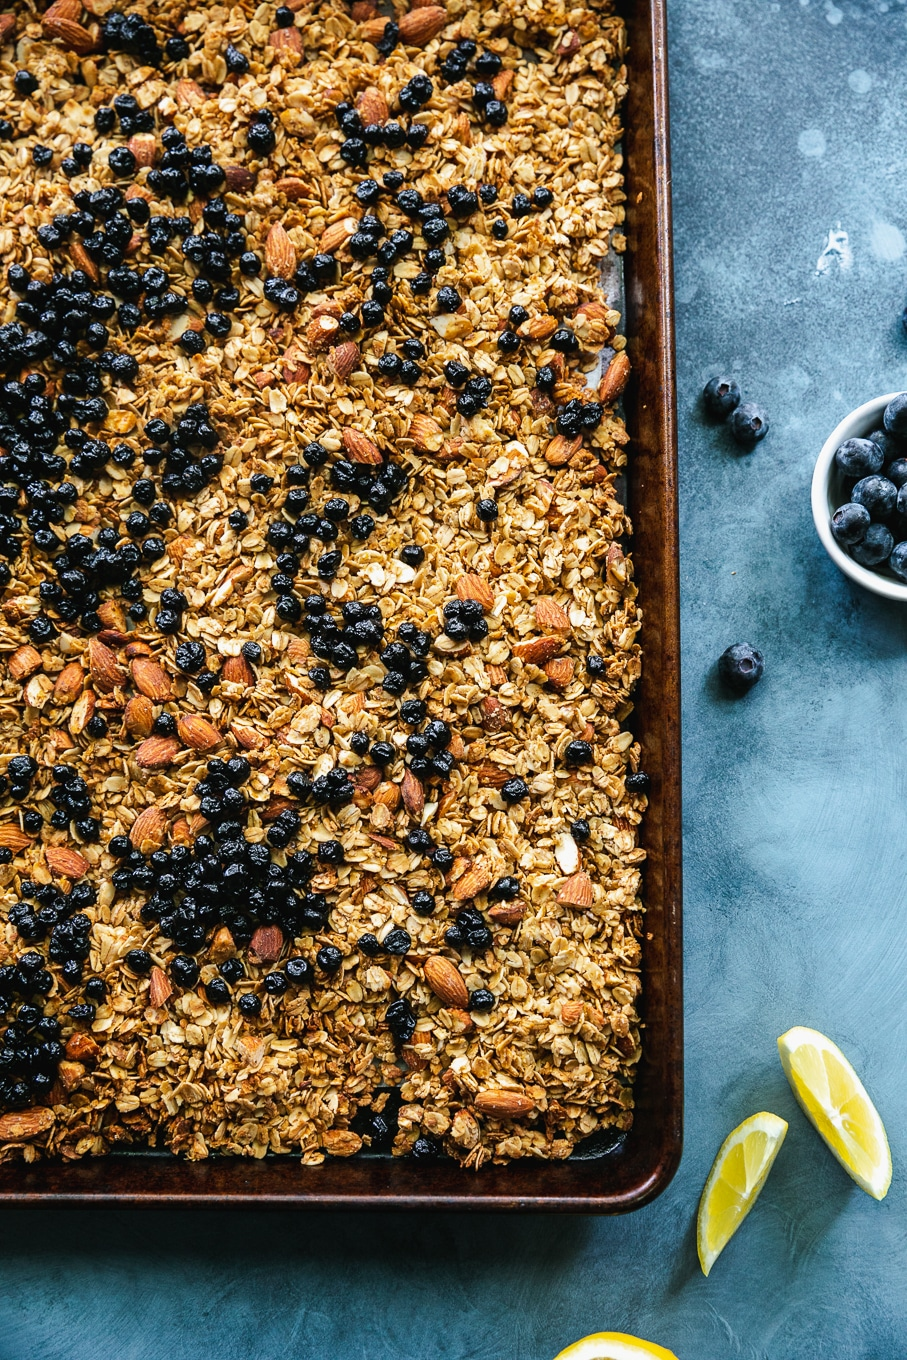 Overhead shot of a baking sheet filled with lemon blueberry granola against a blue background